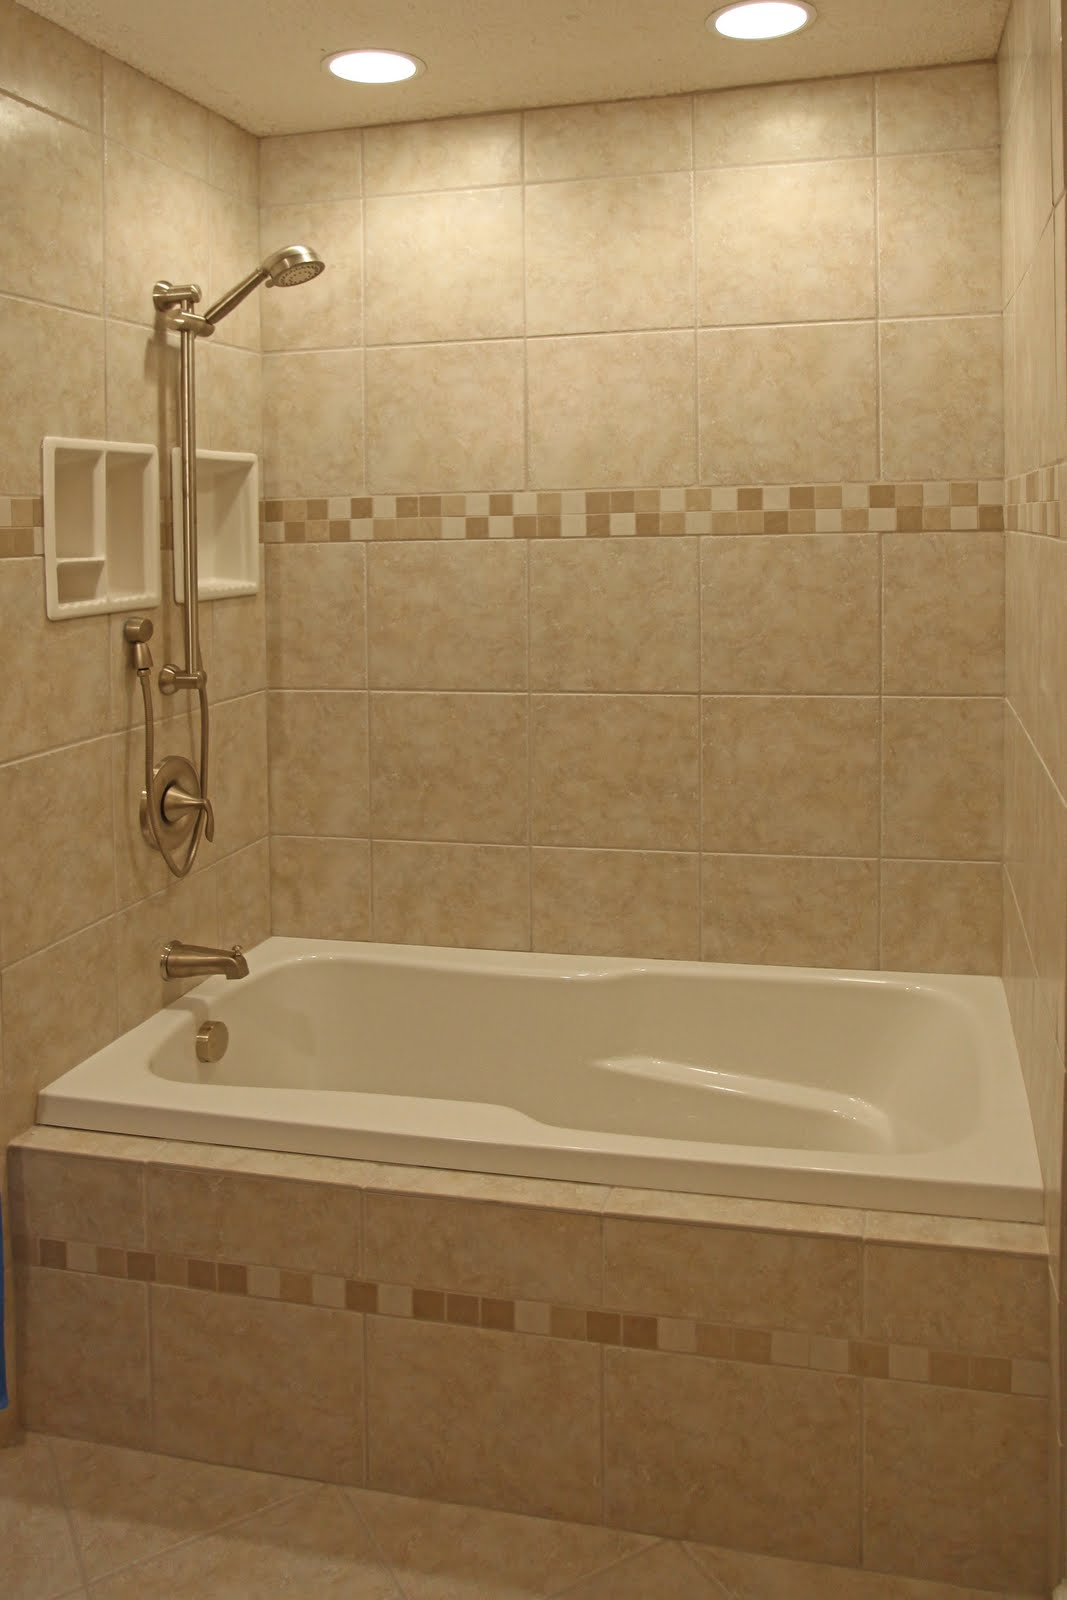 tile bathroom shower ideas bathroom remodeling design ideas tile shower niches november 2009 8102